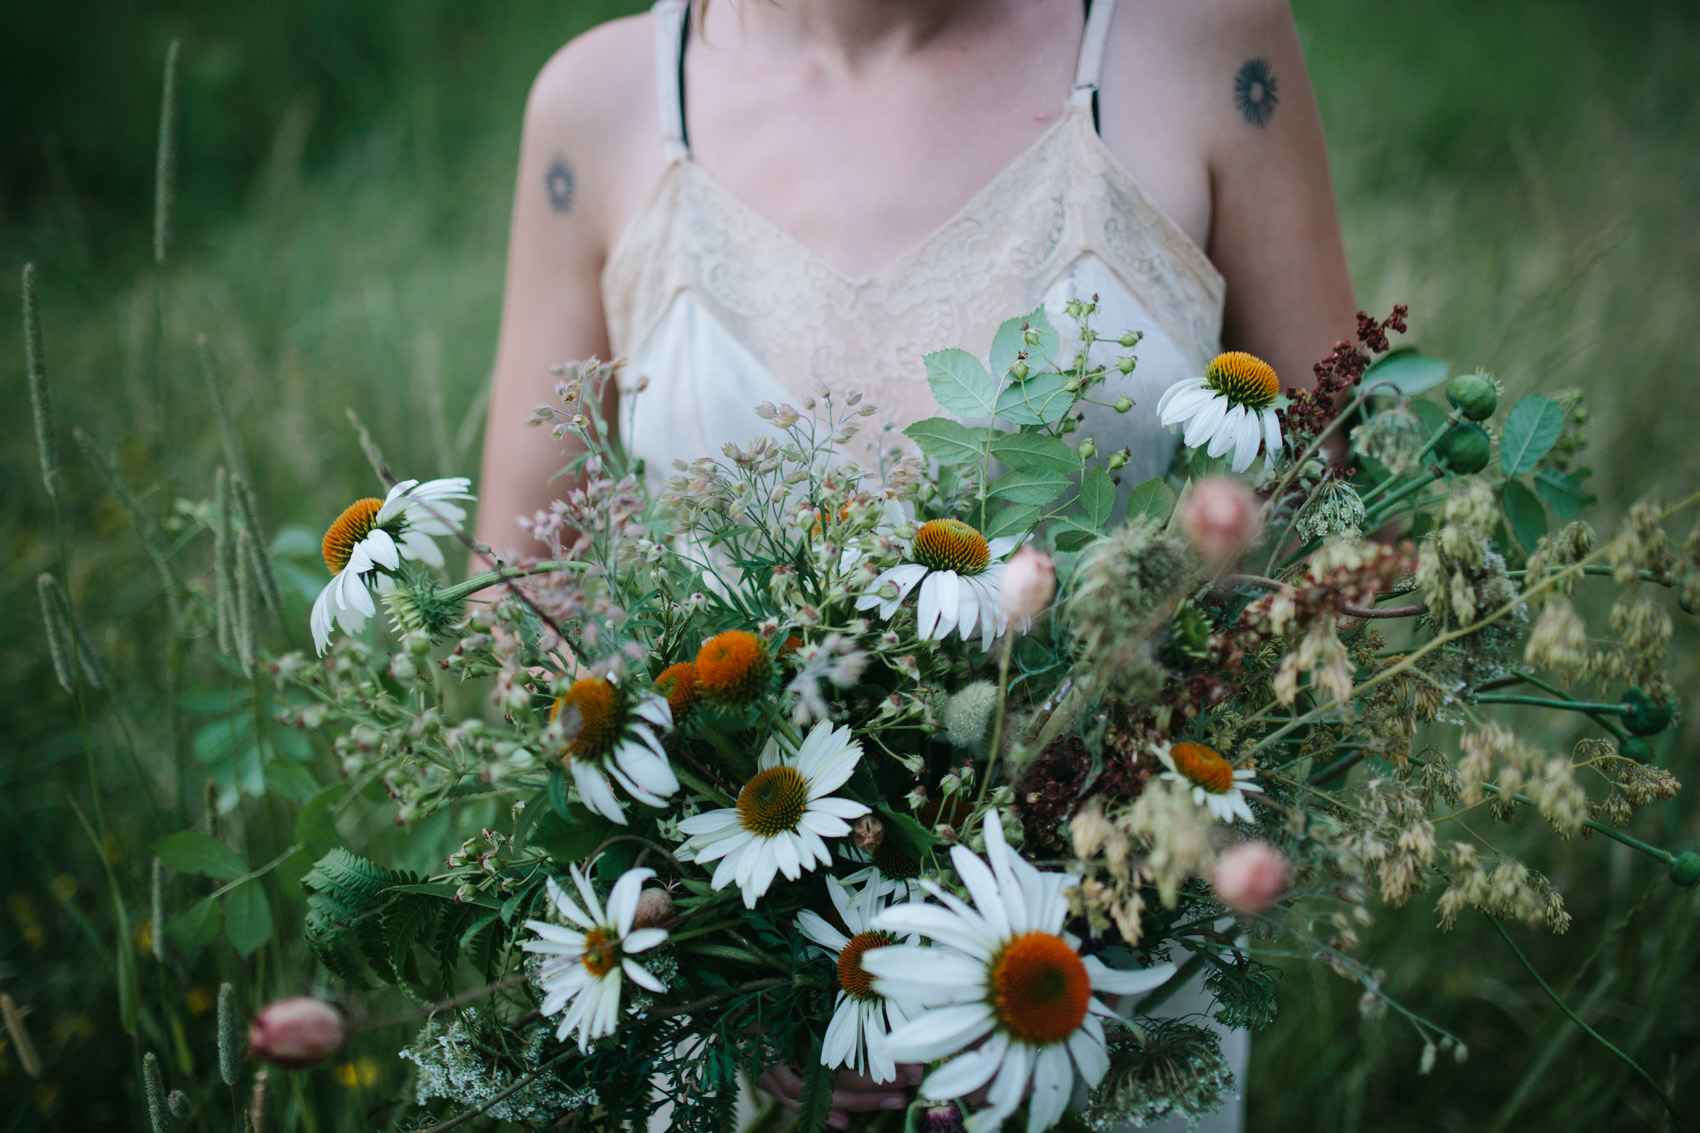 Summer wedding flowers by Nectar & Root | Wedding floral design services in Burlington, Vermont (VT) | Bridal bouquet of poppy pods, echinacea